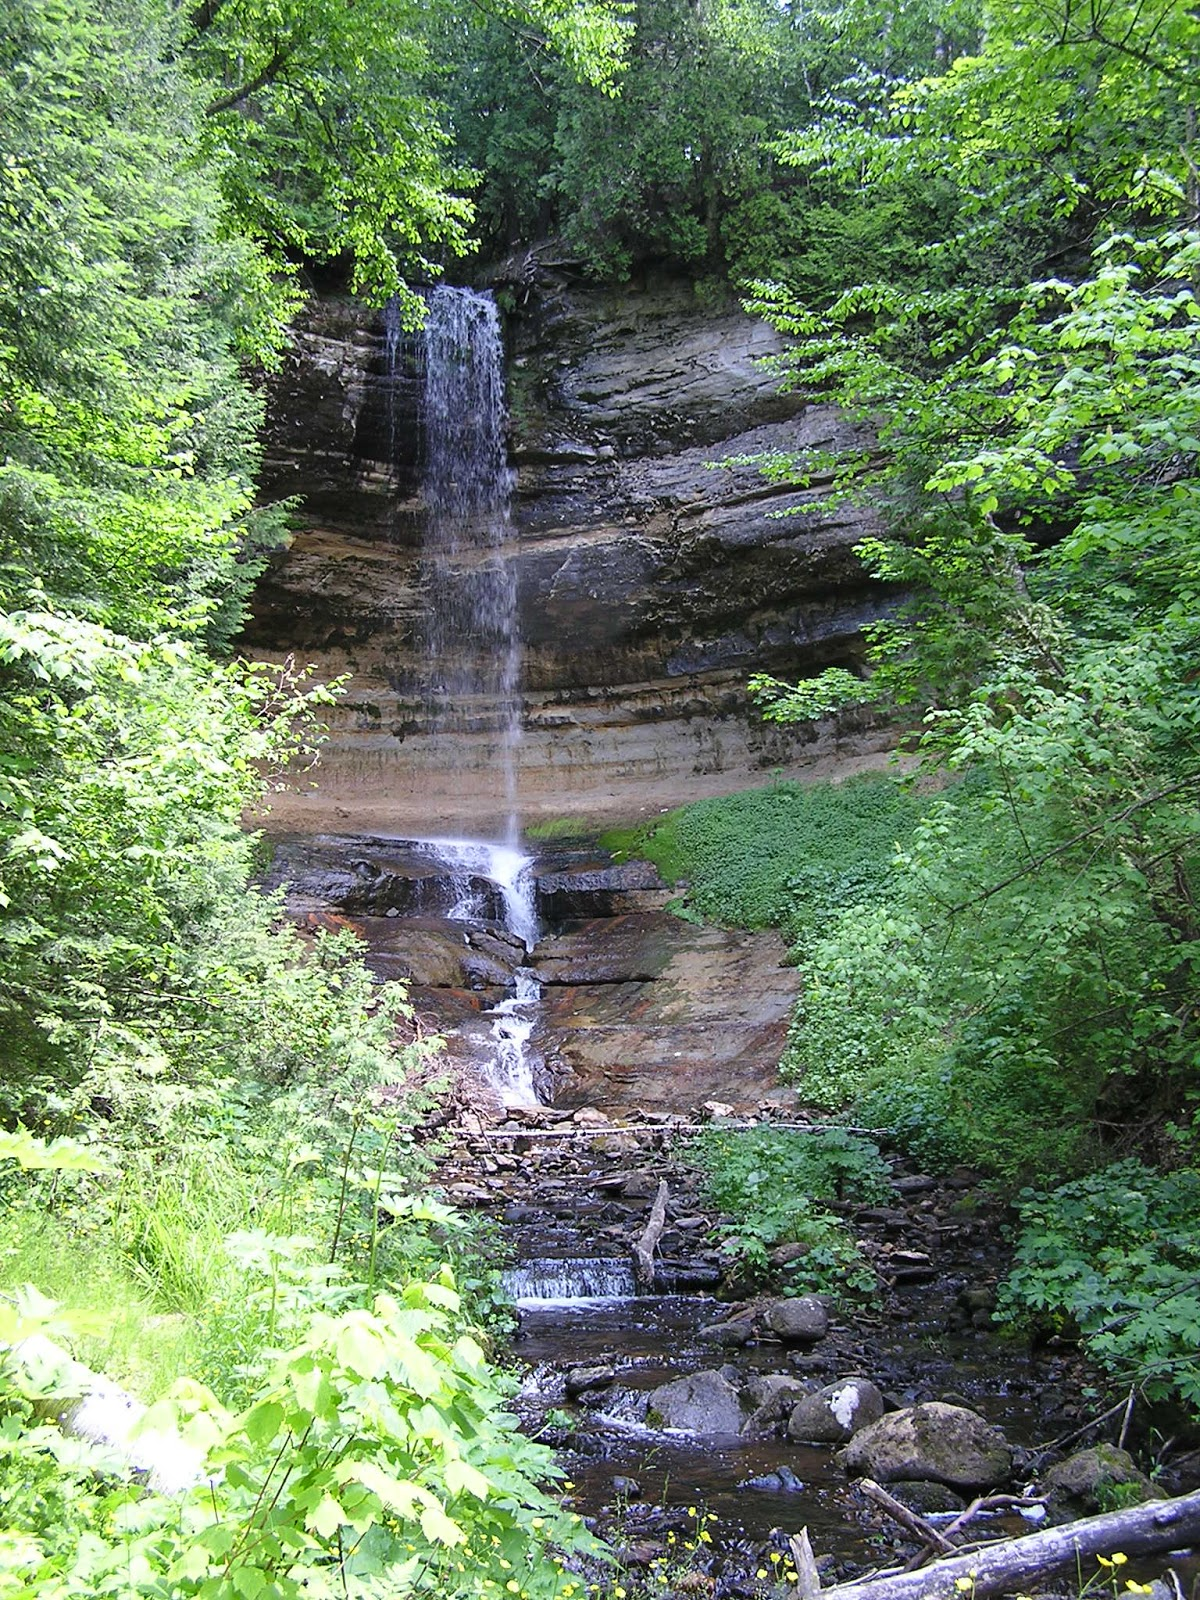 munising single guys 552% of people in munising, mi are single and 448% are married the population of munising, mi is 2,355 the city's residents are 474% men and 526% females.